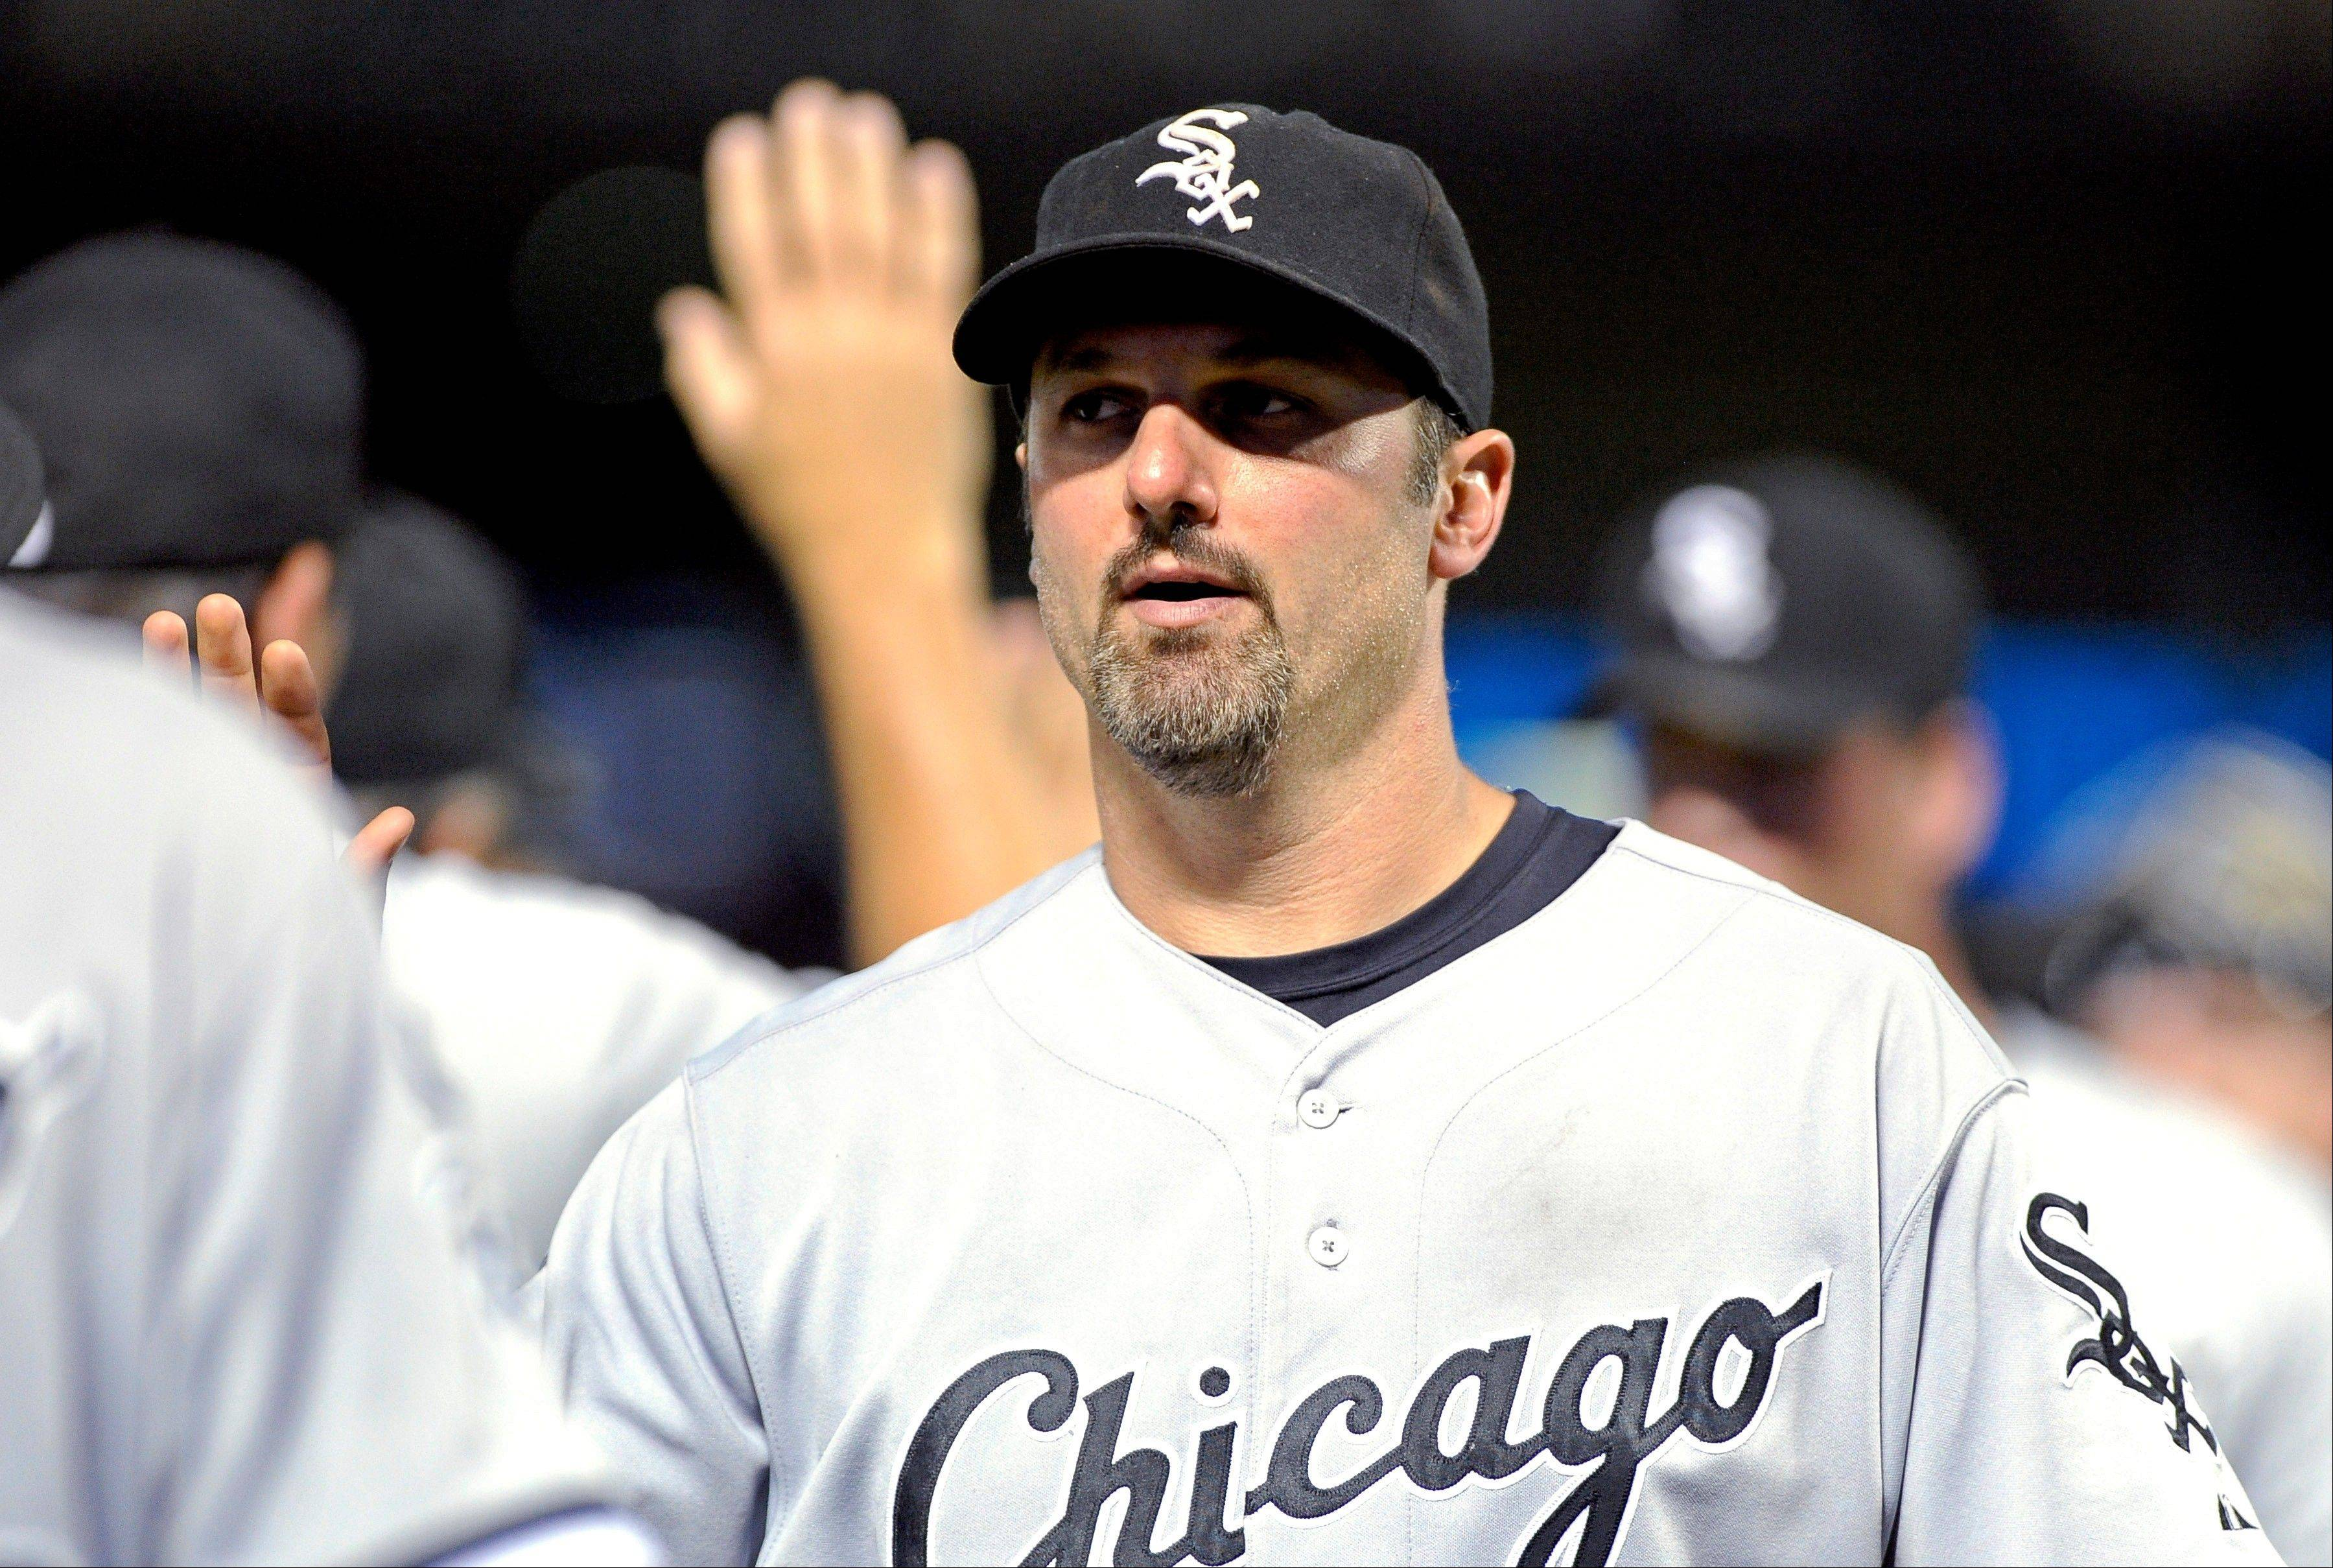 White Sox first baseman Paul Konerko high-fives with teammates after the final out of a baseball game against the Texas Rangers, Saturday, July 28, 2012, in Arlington, Texas. The Chicago White Sox won 5-2.